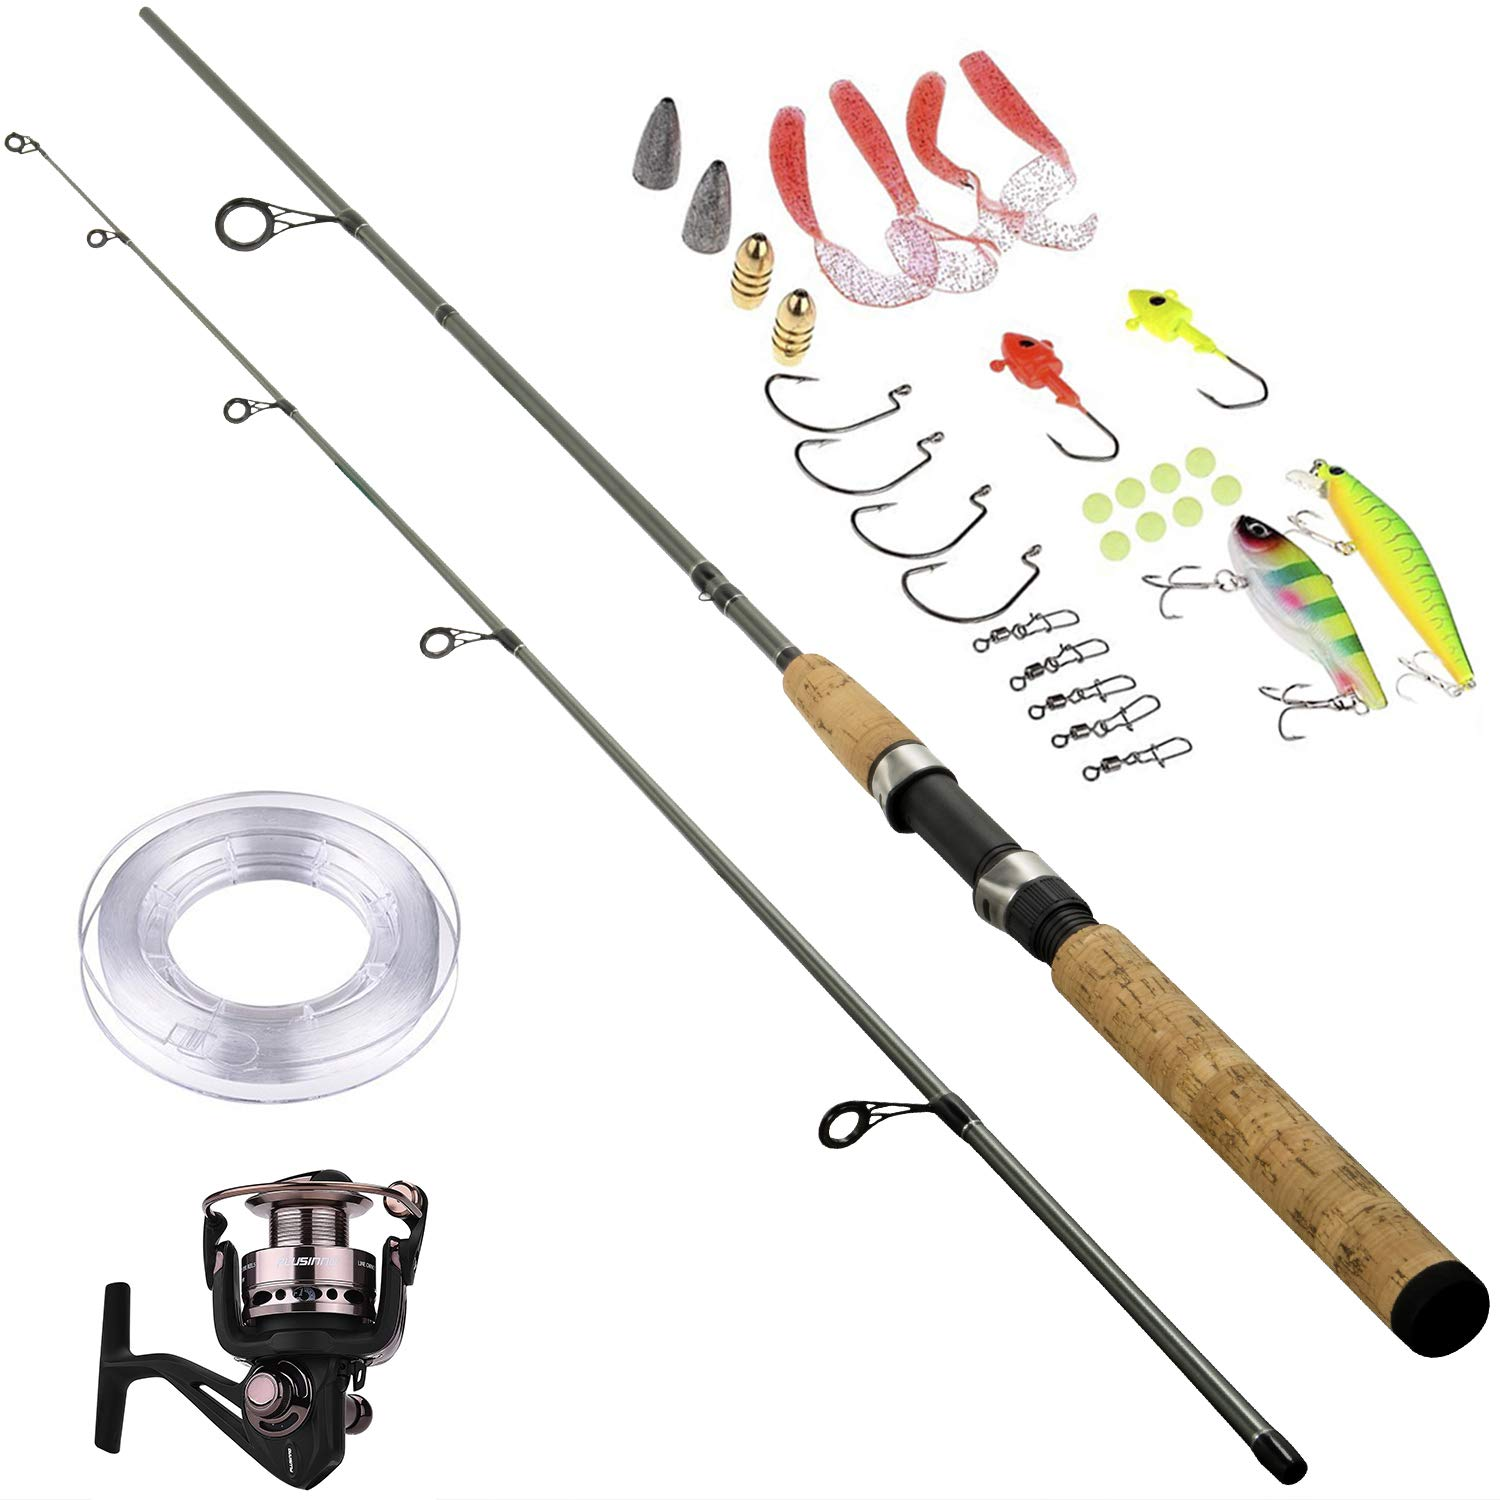 PLUSINNO Portable Two-Piece Spinning Rod Graphite Medium Fast Action 7' Spinning Fishing Rod and Reel Combo